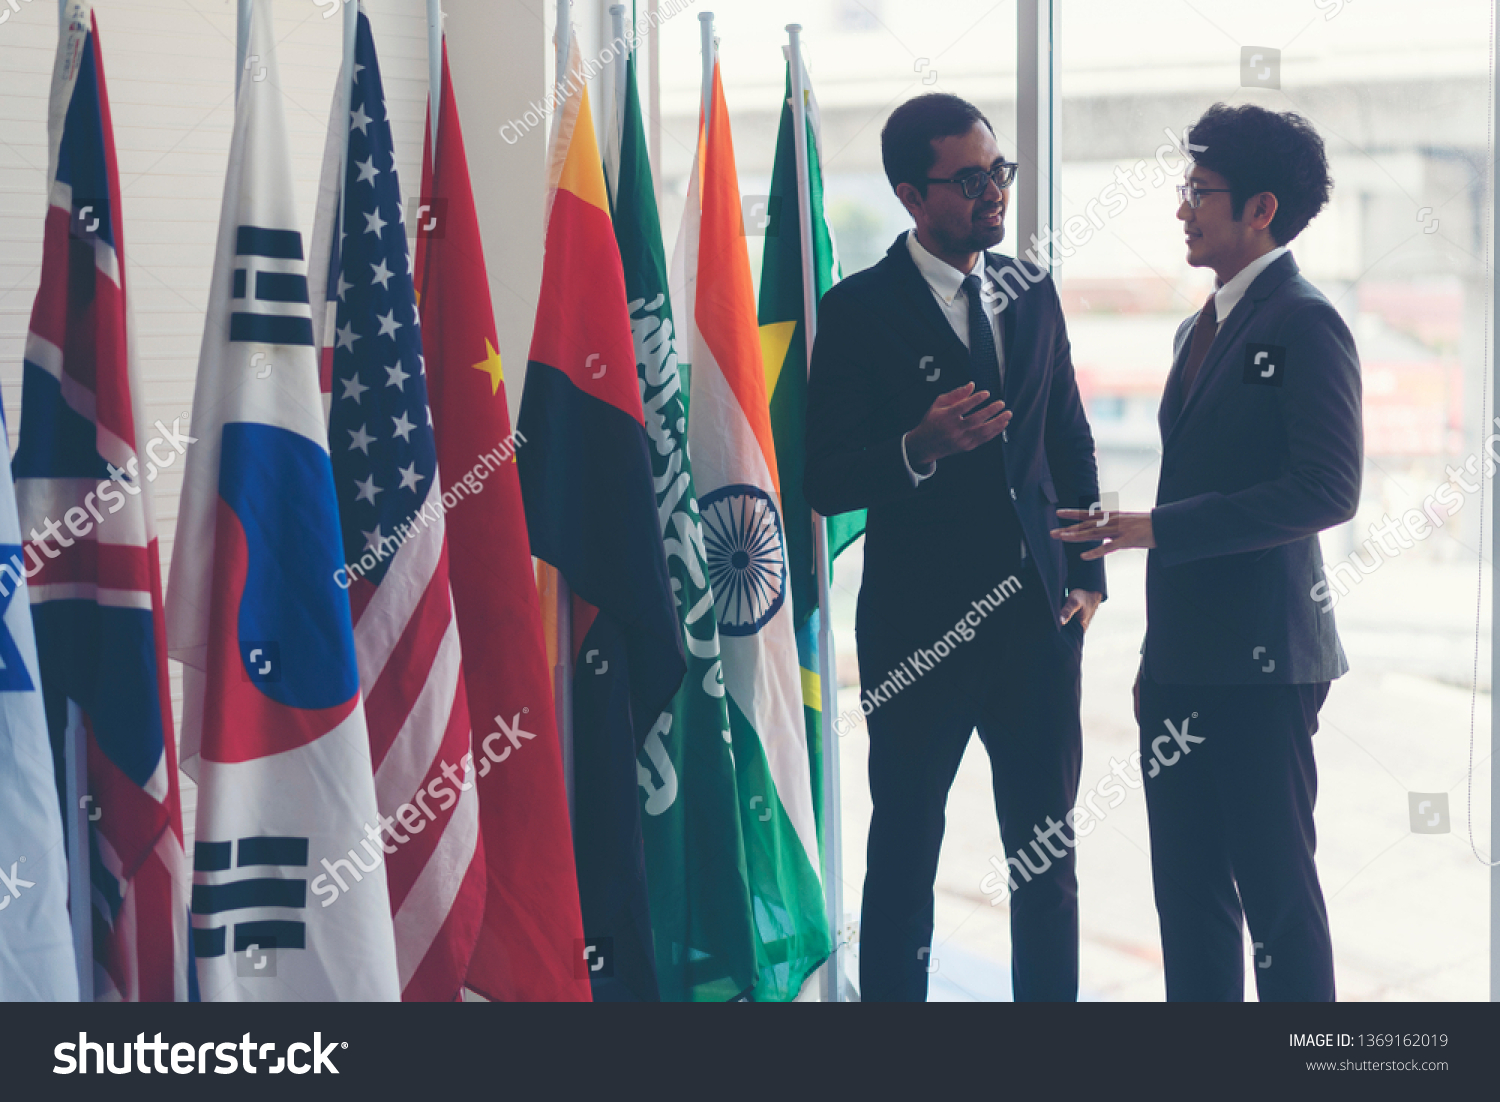 The picture shows the relationship between countries. Diplomatic relations And international business #1369162019